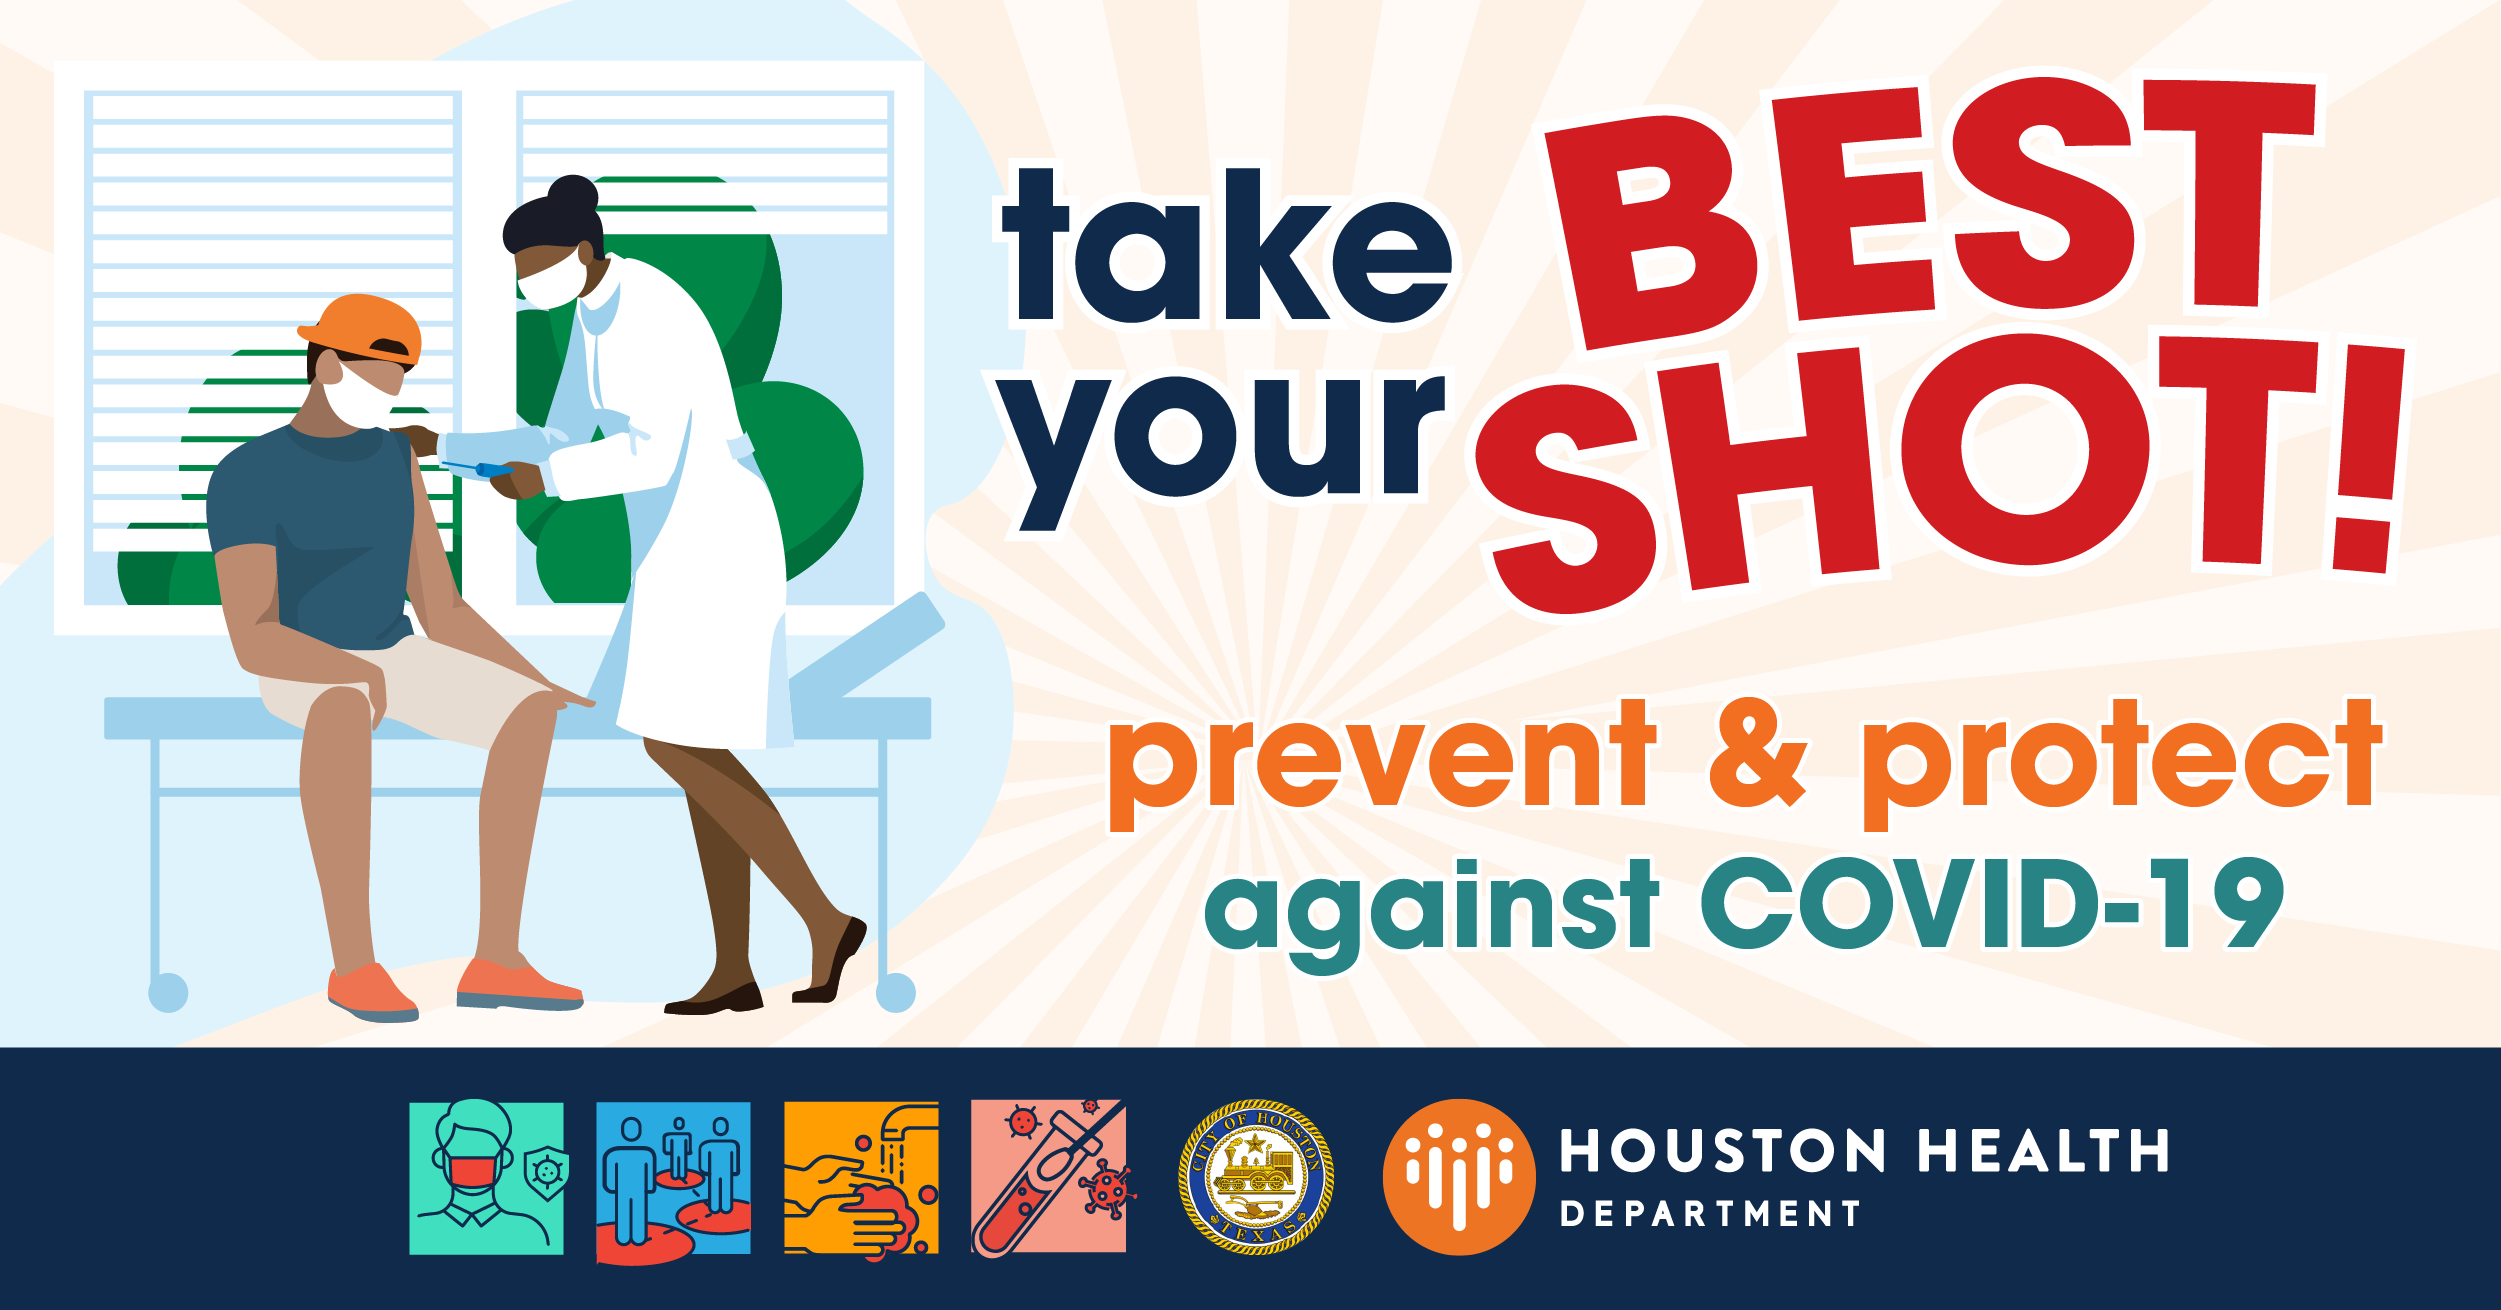 "Image of nurse in mask vaccinating a person sitting in a a chair, also wearing a mask. The text reads ""Take Your Best Shot: Prevent and Protect against COVID-19"" with Houston Health Department logo and City of Houston seal at bottom."